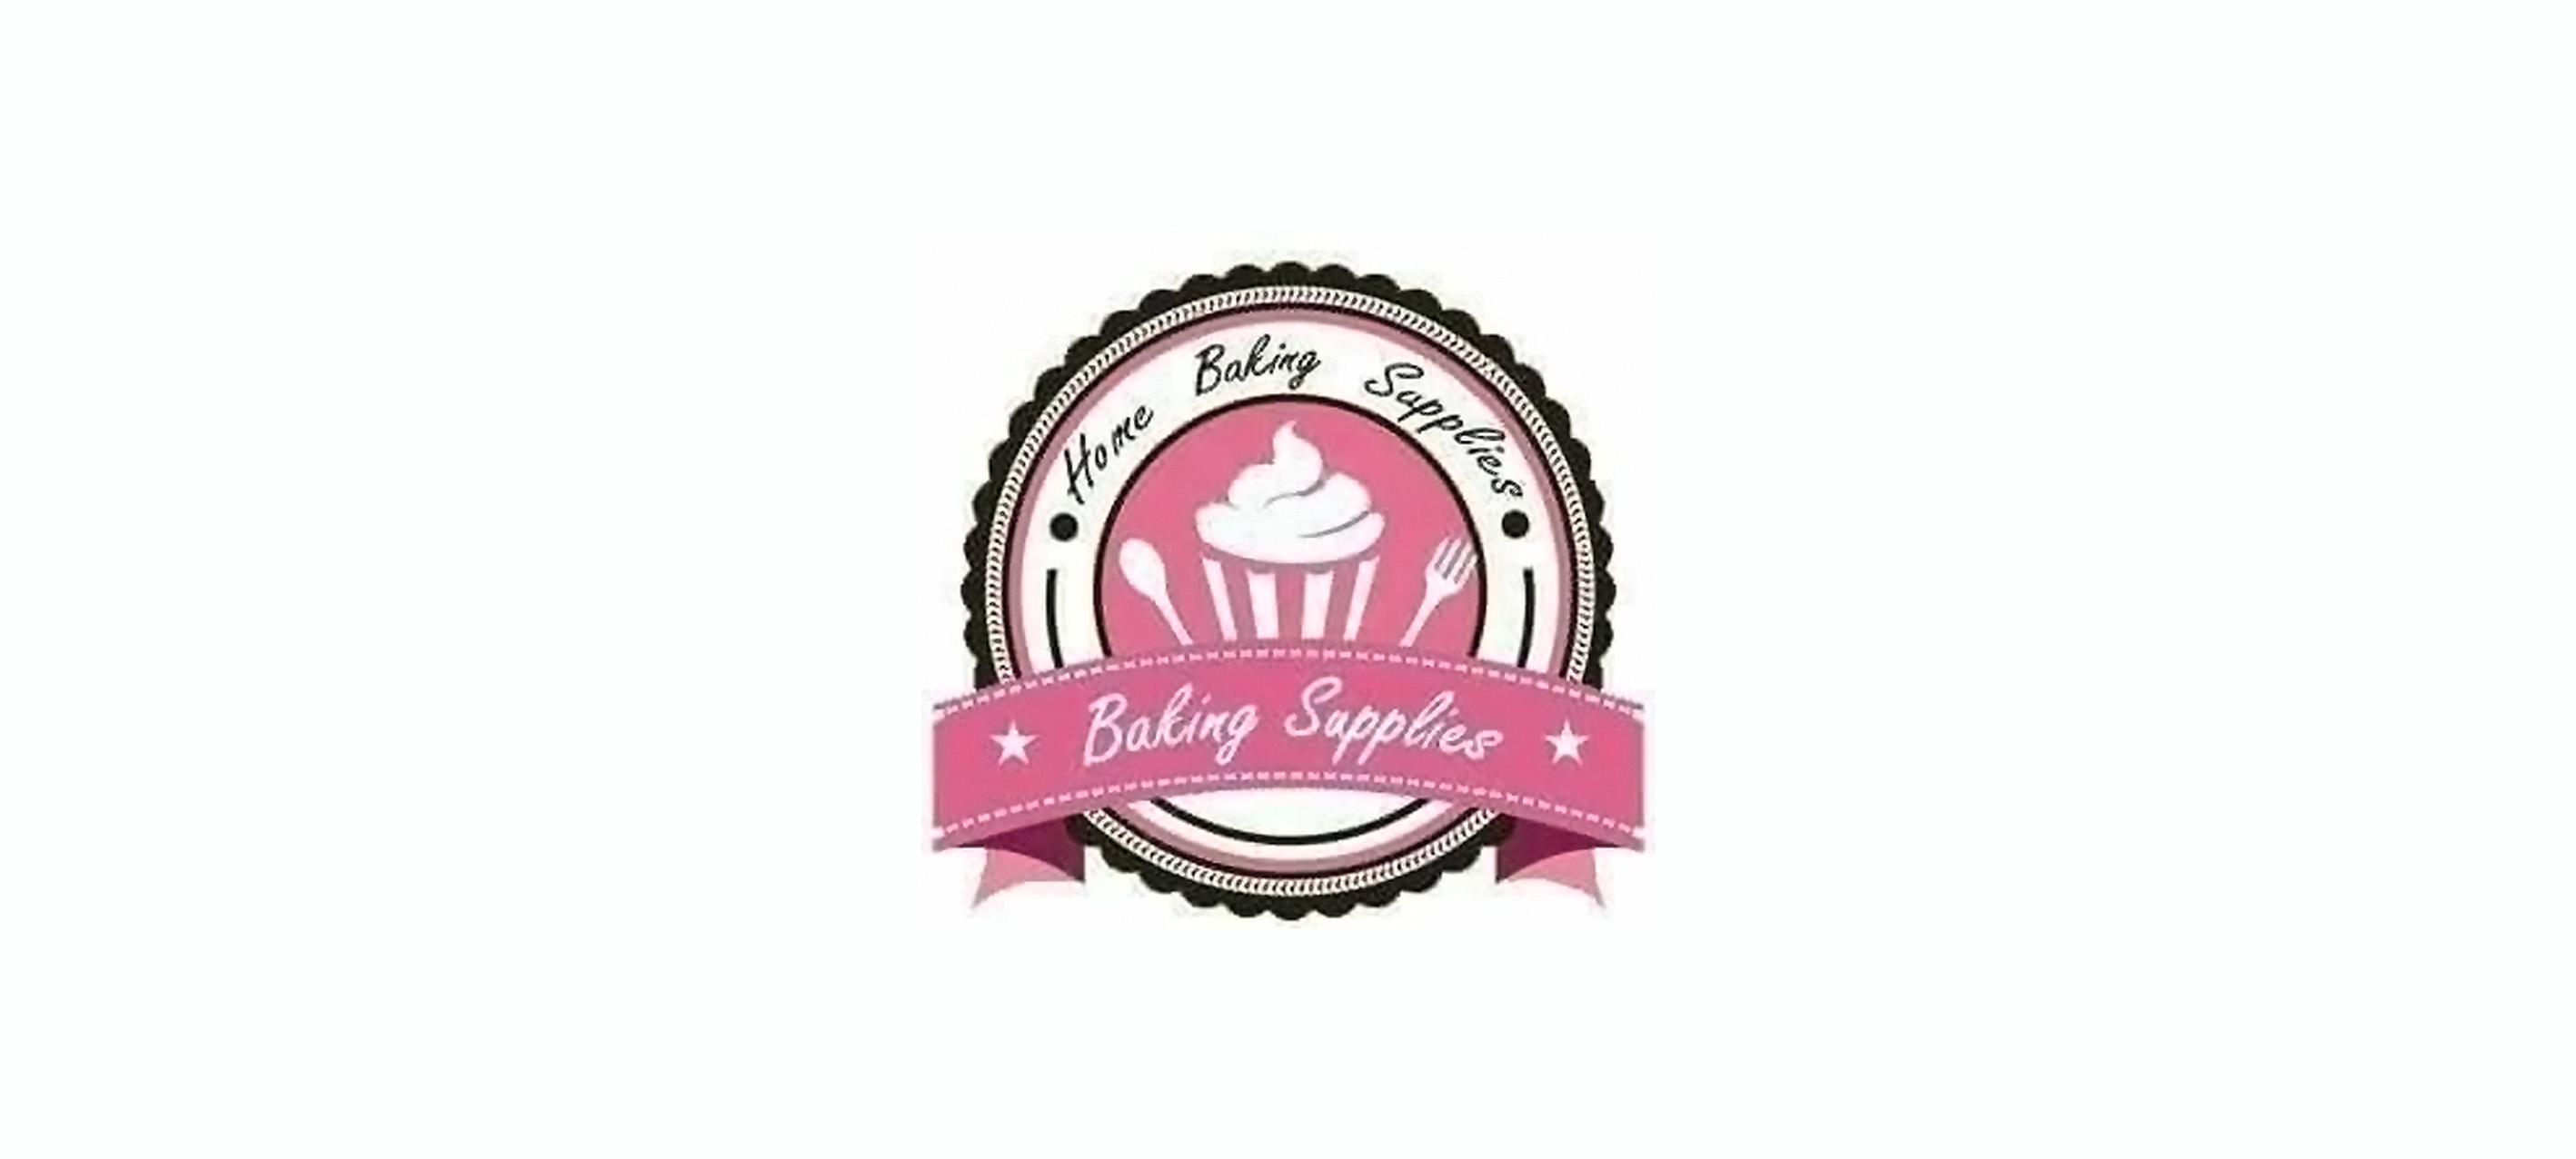 Home Baking Supplies - WilroGate Shopping Centre